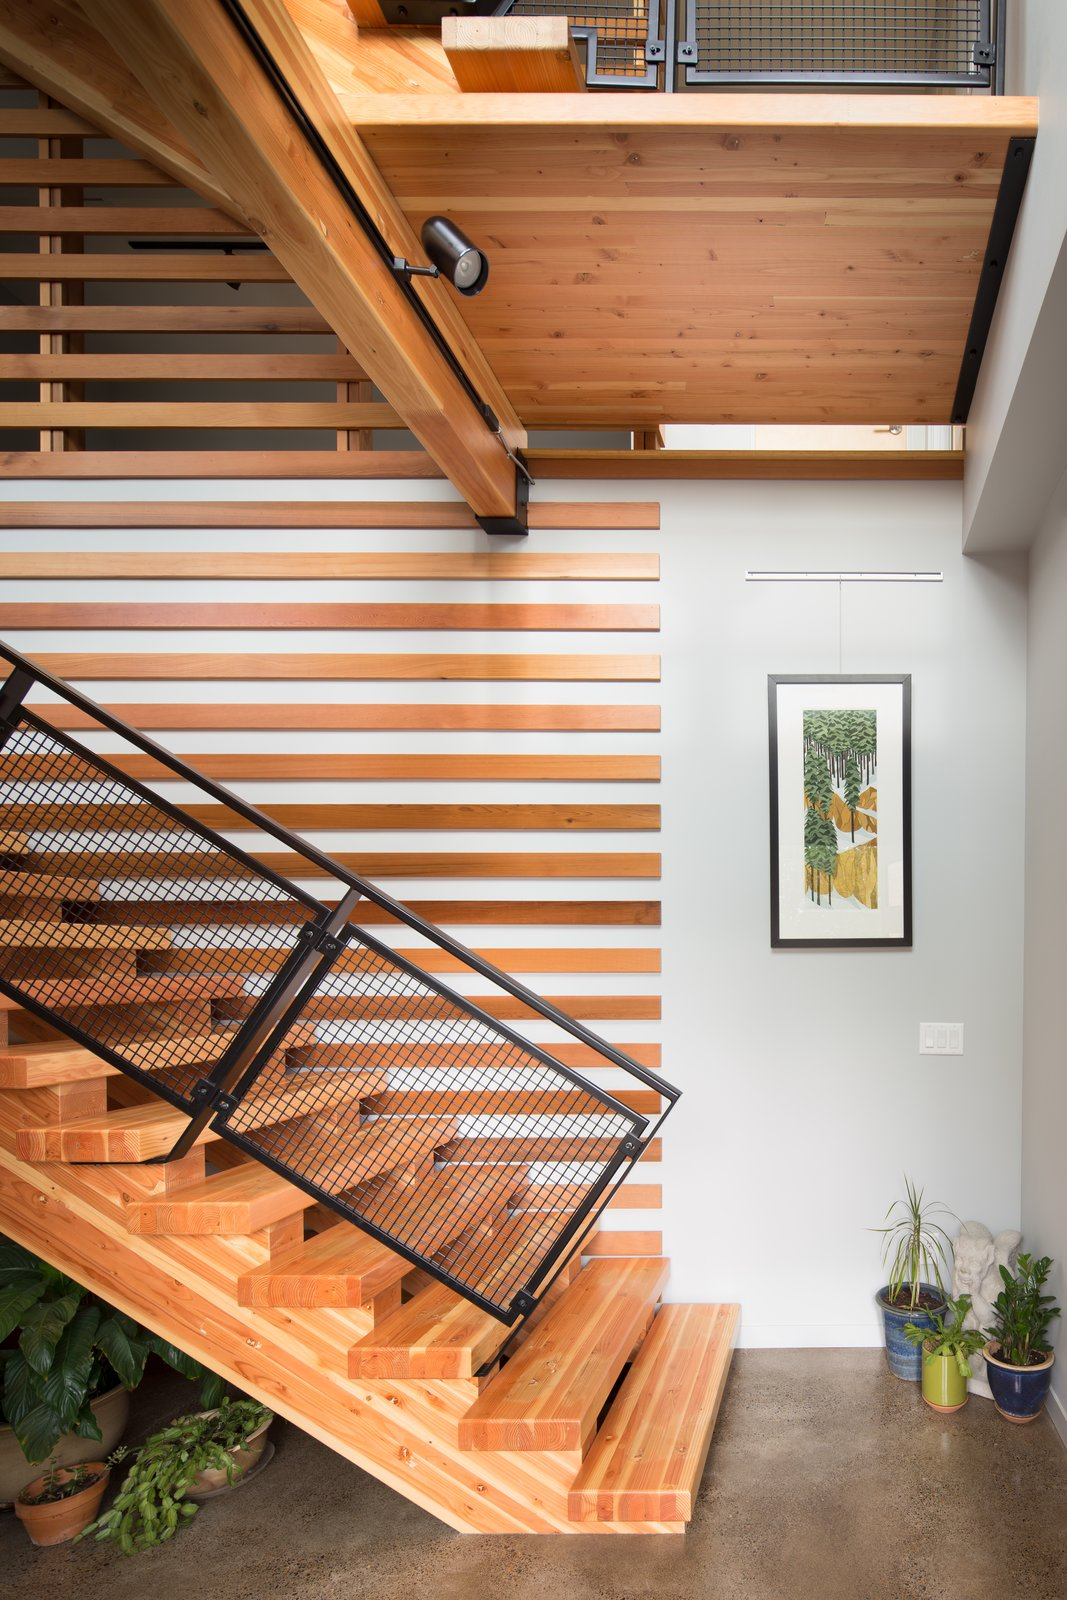 Staircase, Wood Tread, and Metal Railing Entry Stair  Panavista Hill House by Steelhead Architecture